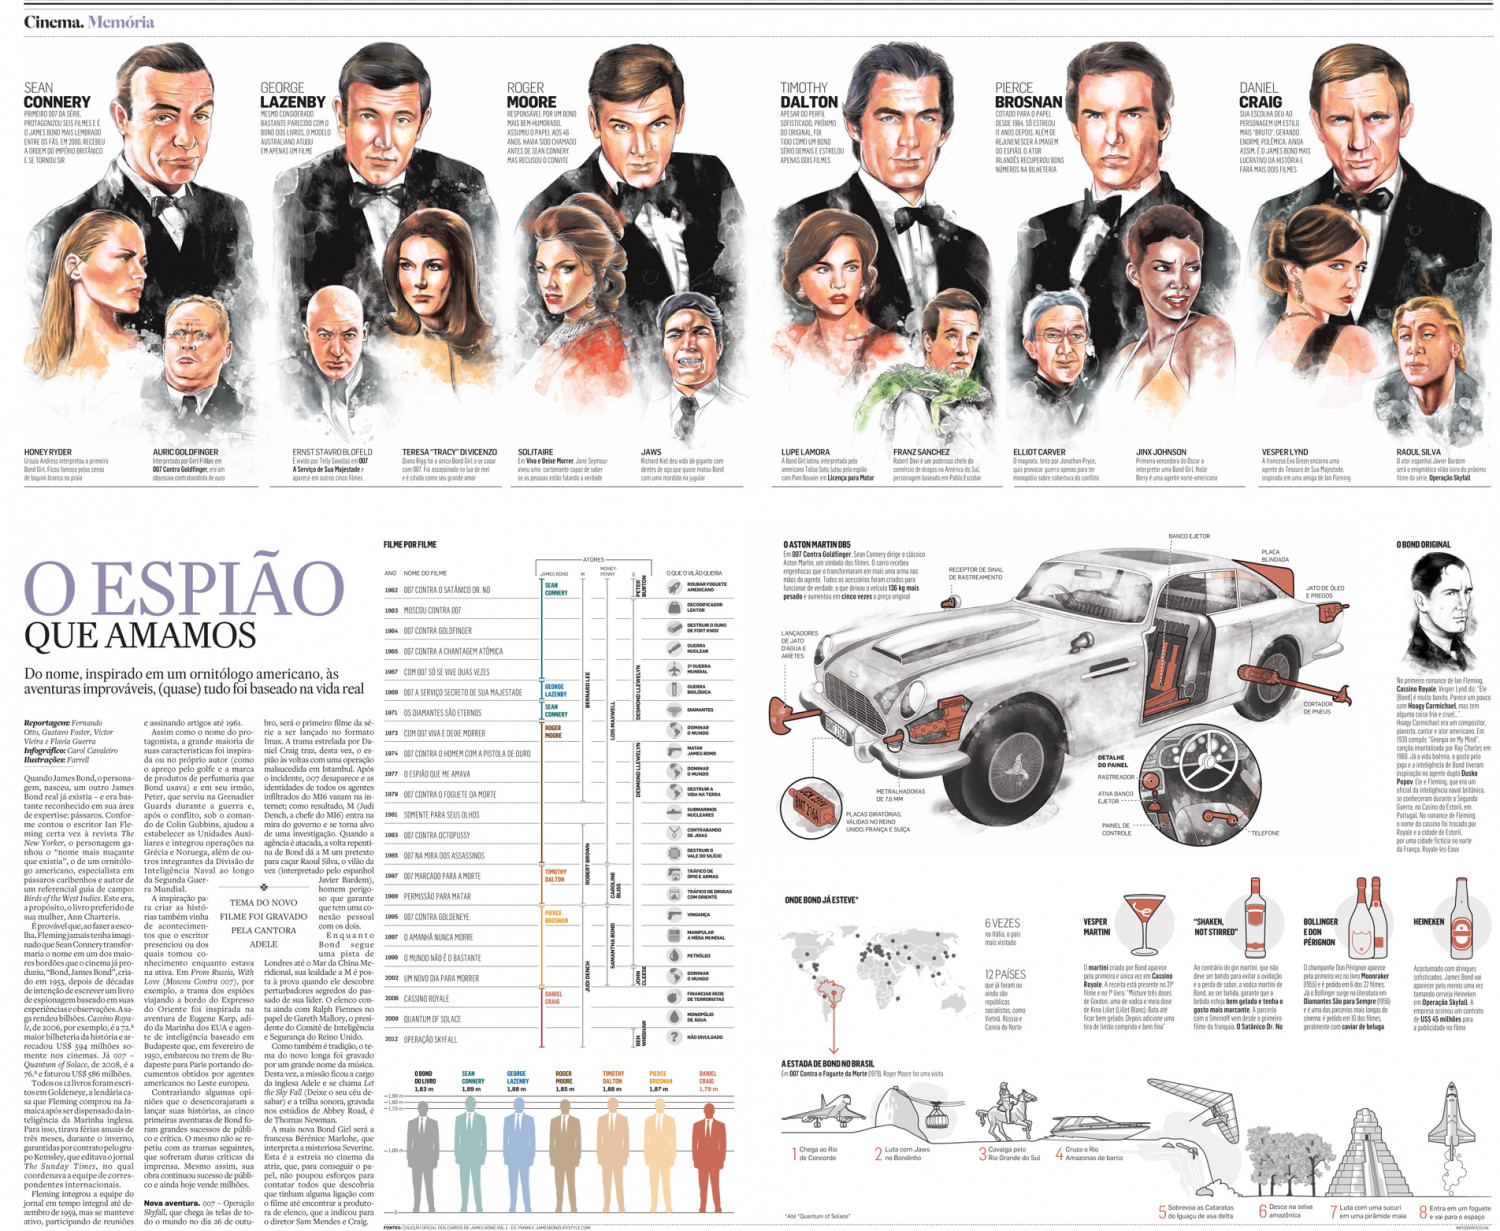 James Bond Infographic